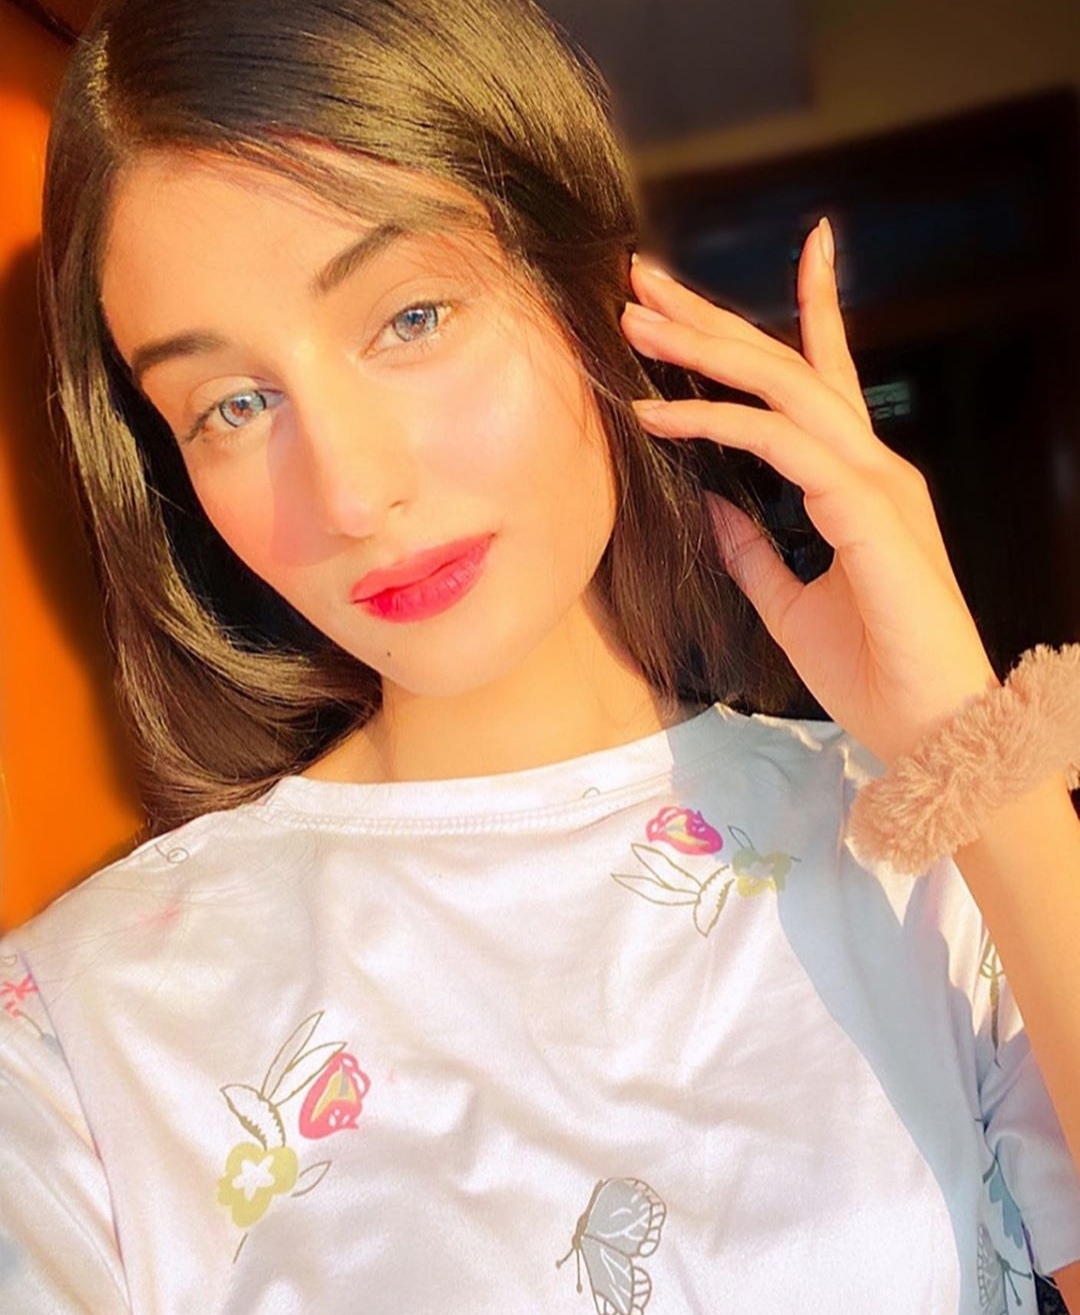 Payal Gaming aka Payal Dhare Profile  Contact Details (Phone number, Instagram, Twitter, YouTube, Facebook, Discord, Email address)